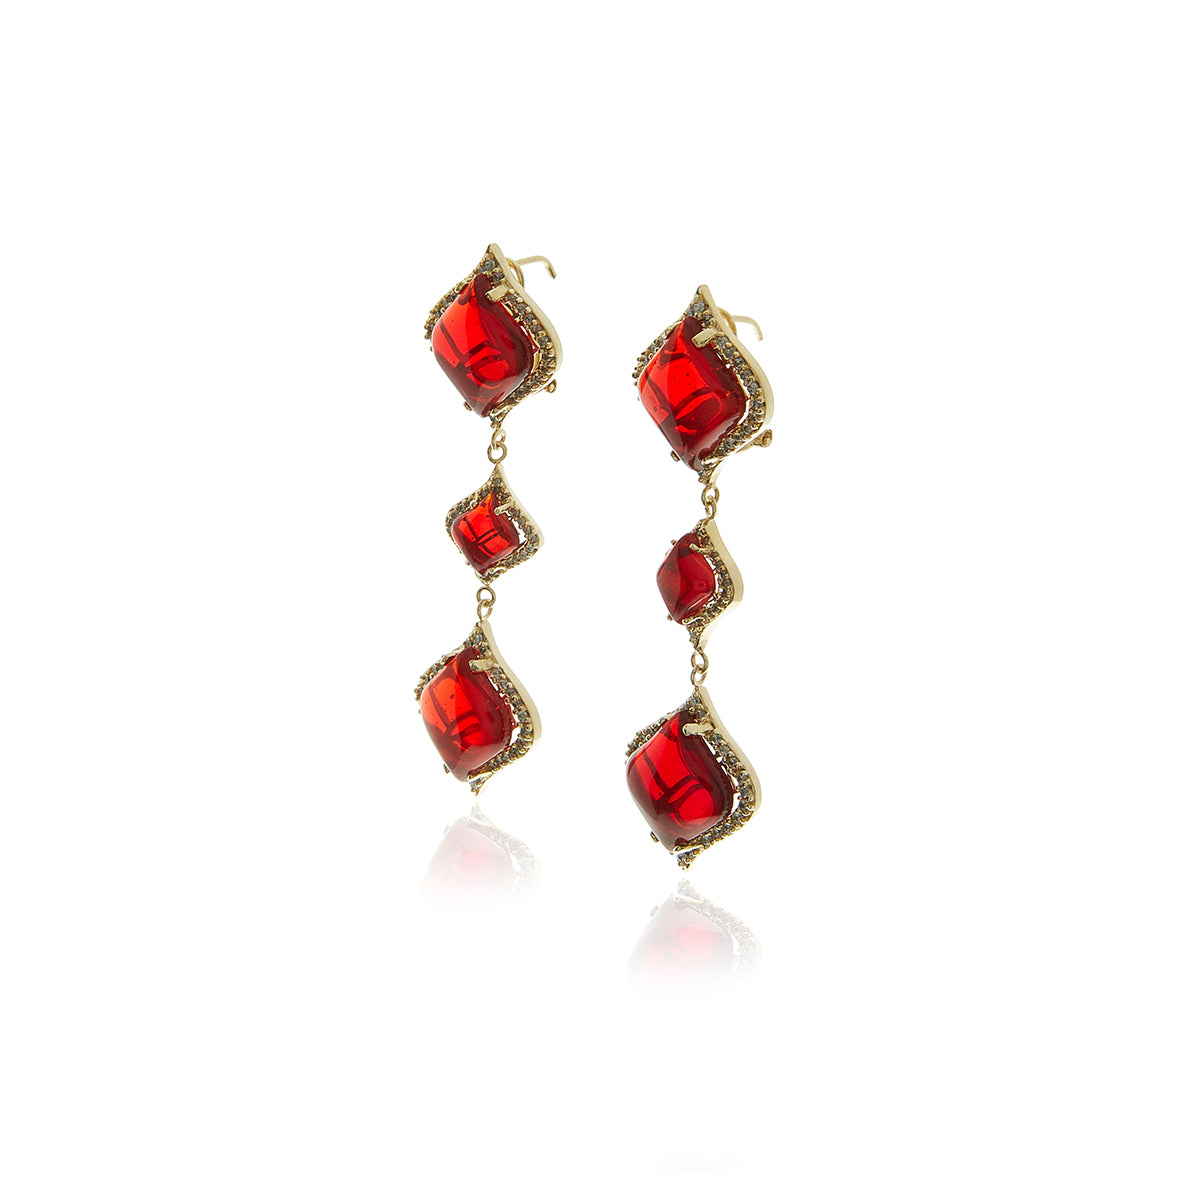 Gold Petals Garnet Long Earrings - MCK Brands